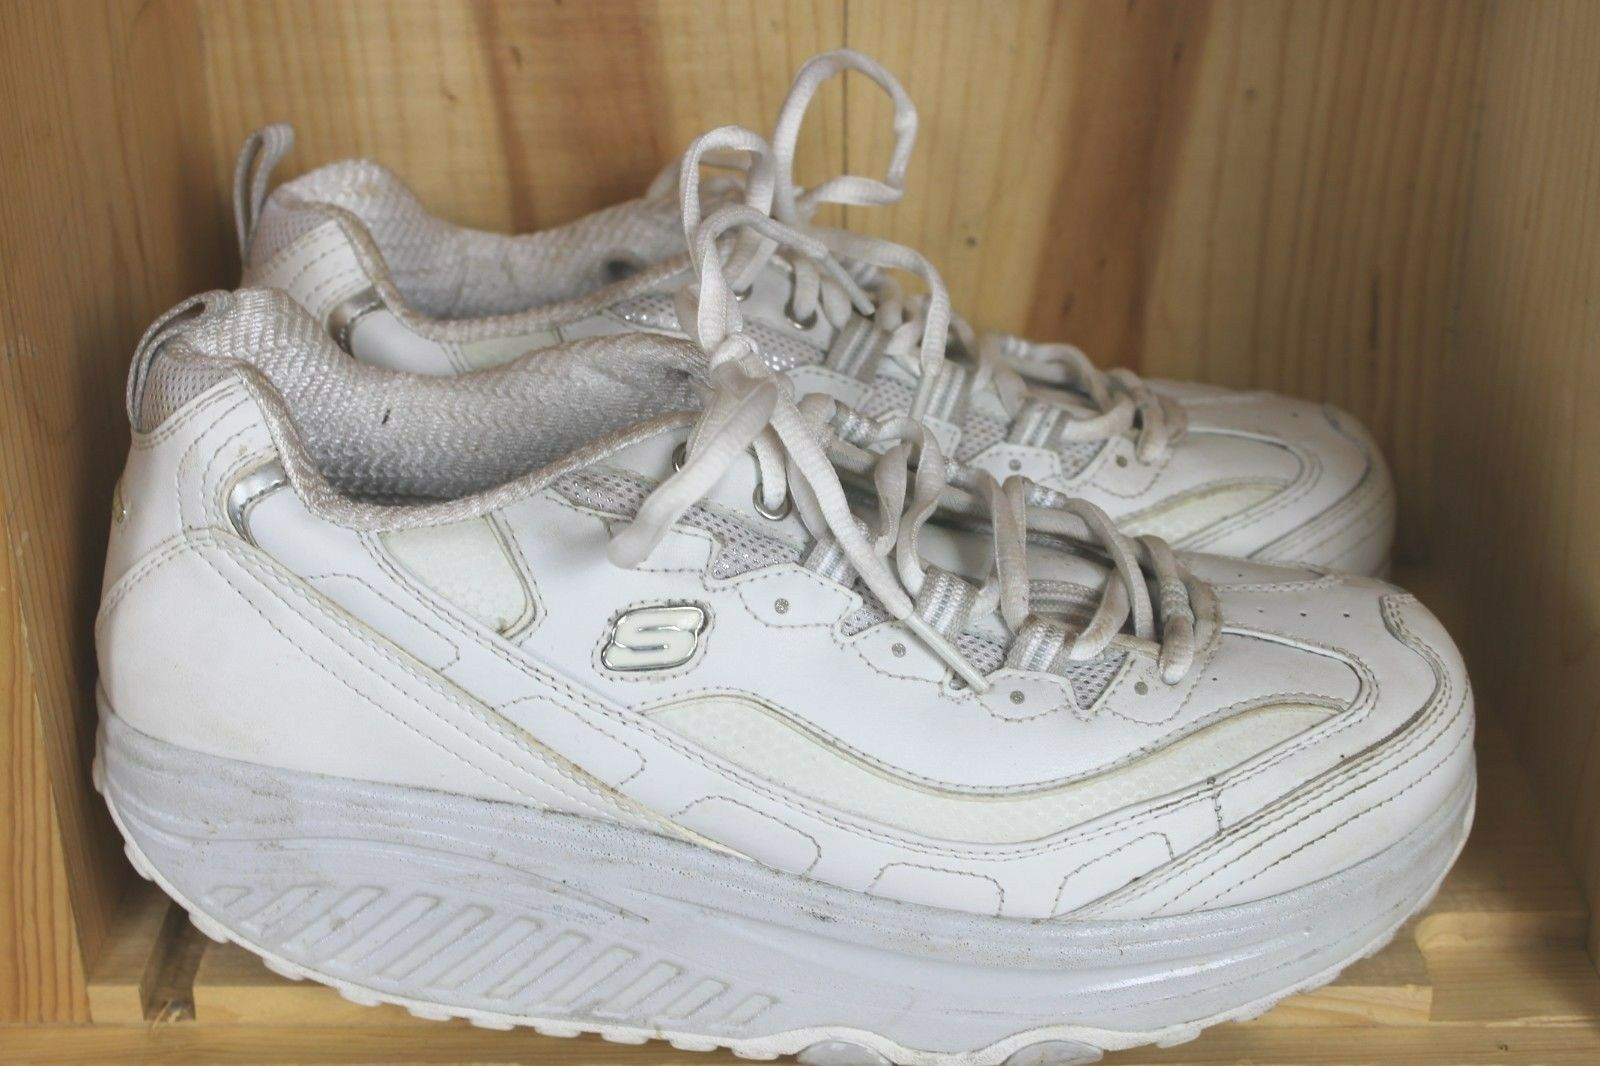 Skechers Shape Ups Leder Fitness Athletic Schuhes Weiß Leder Ups sz 9.5 Damenschuhe 11800 4d5c49